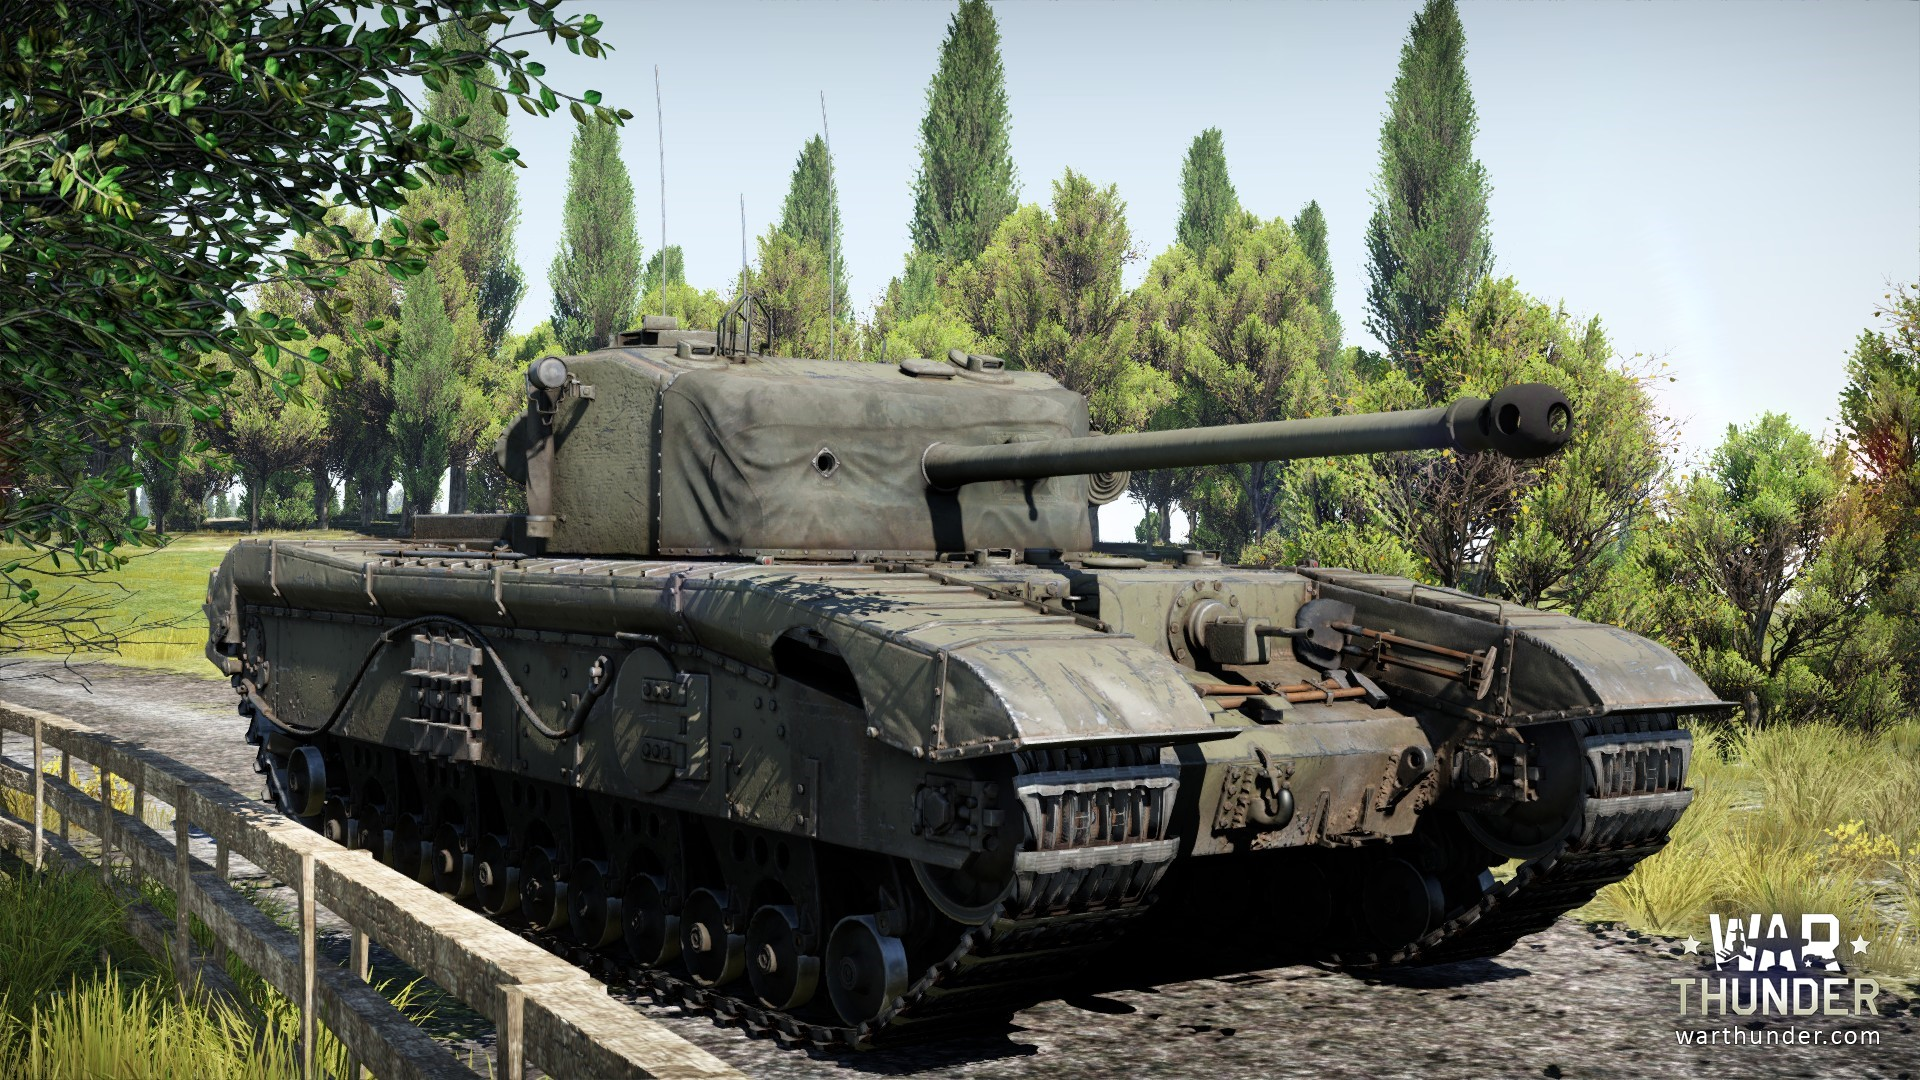 war thunder matchmaking tanks War thunder: ground forces mmo game preview gaijin entertainment free to play promising: beautiful graphics huge battlefields combined arms air-ground interaction authentic ballistics and damage models multiple levels of realism customizable camouflage and decals these massive battlefields.